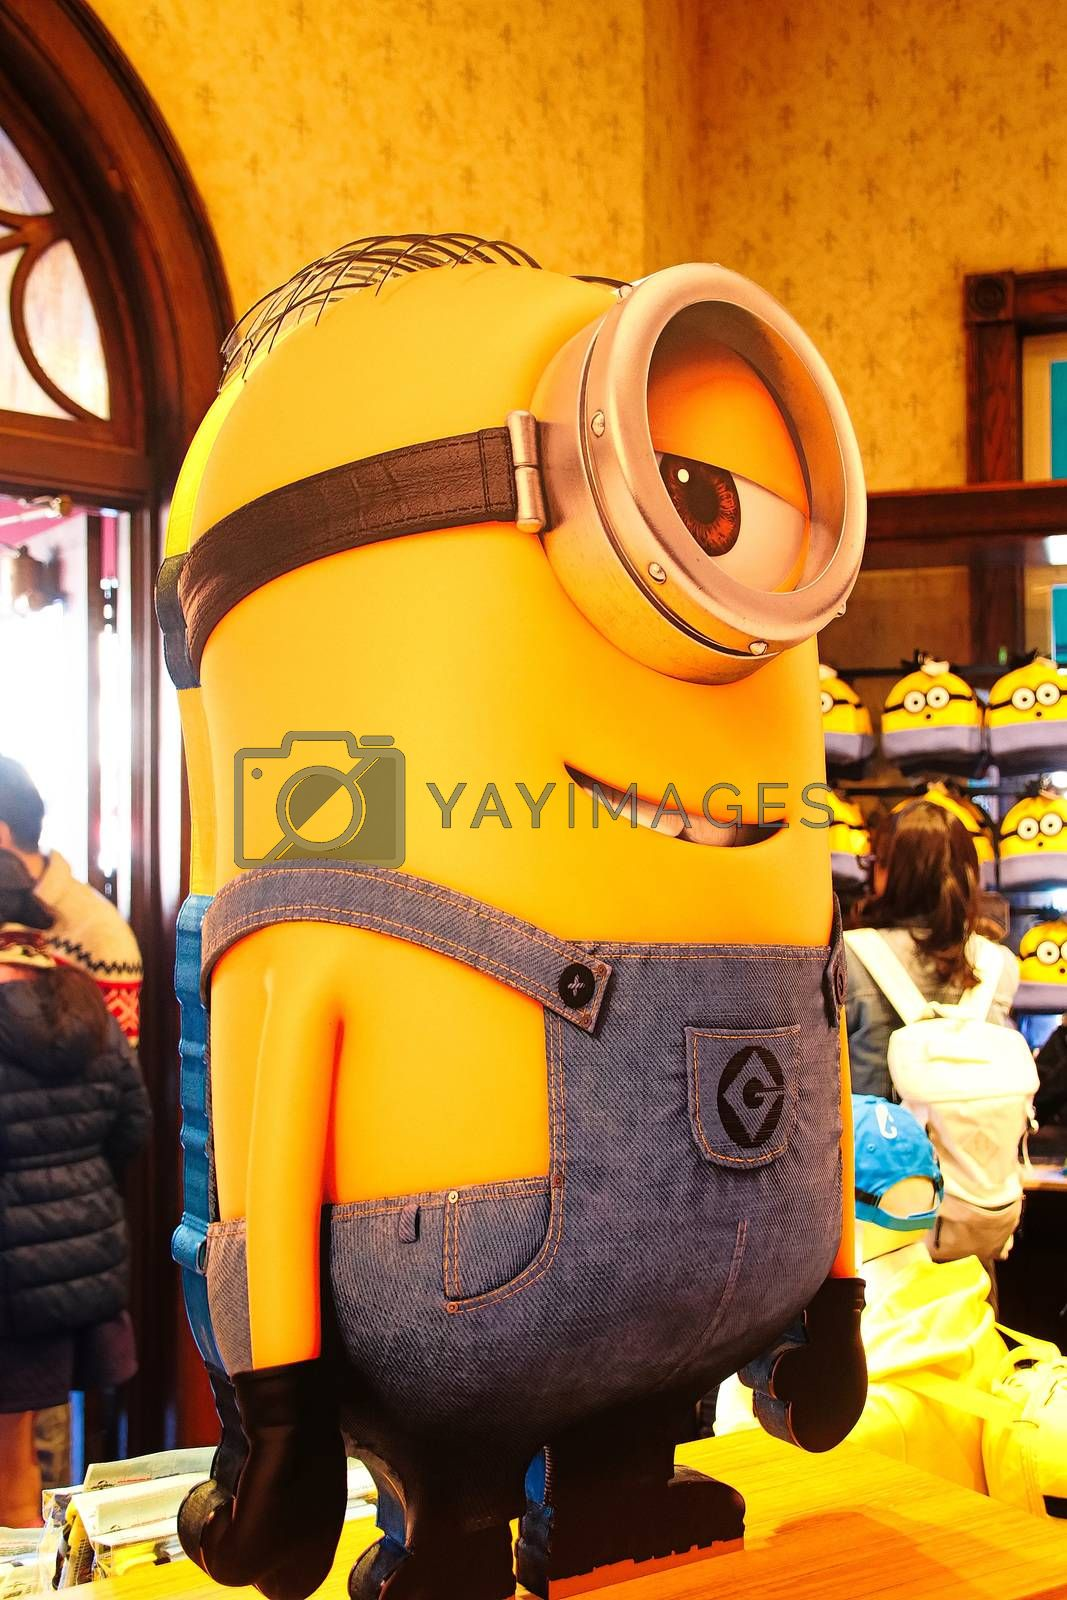 OSAKA, JAPAN - JAN 07, 2020 : Sign of 'MINION PARK', located in Universal Studios JAPAN, Osaka, Japan. Minions are famous character from Despicable Me animation.